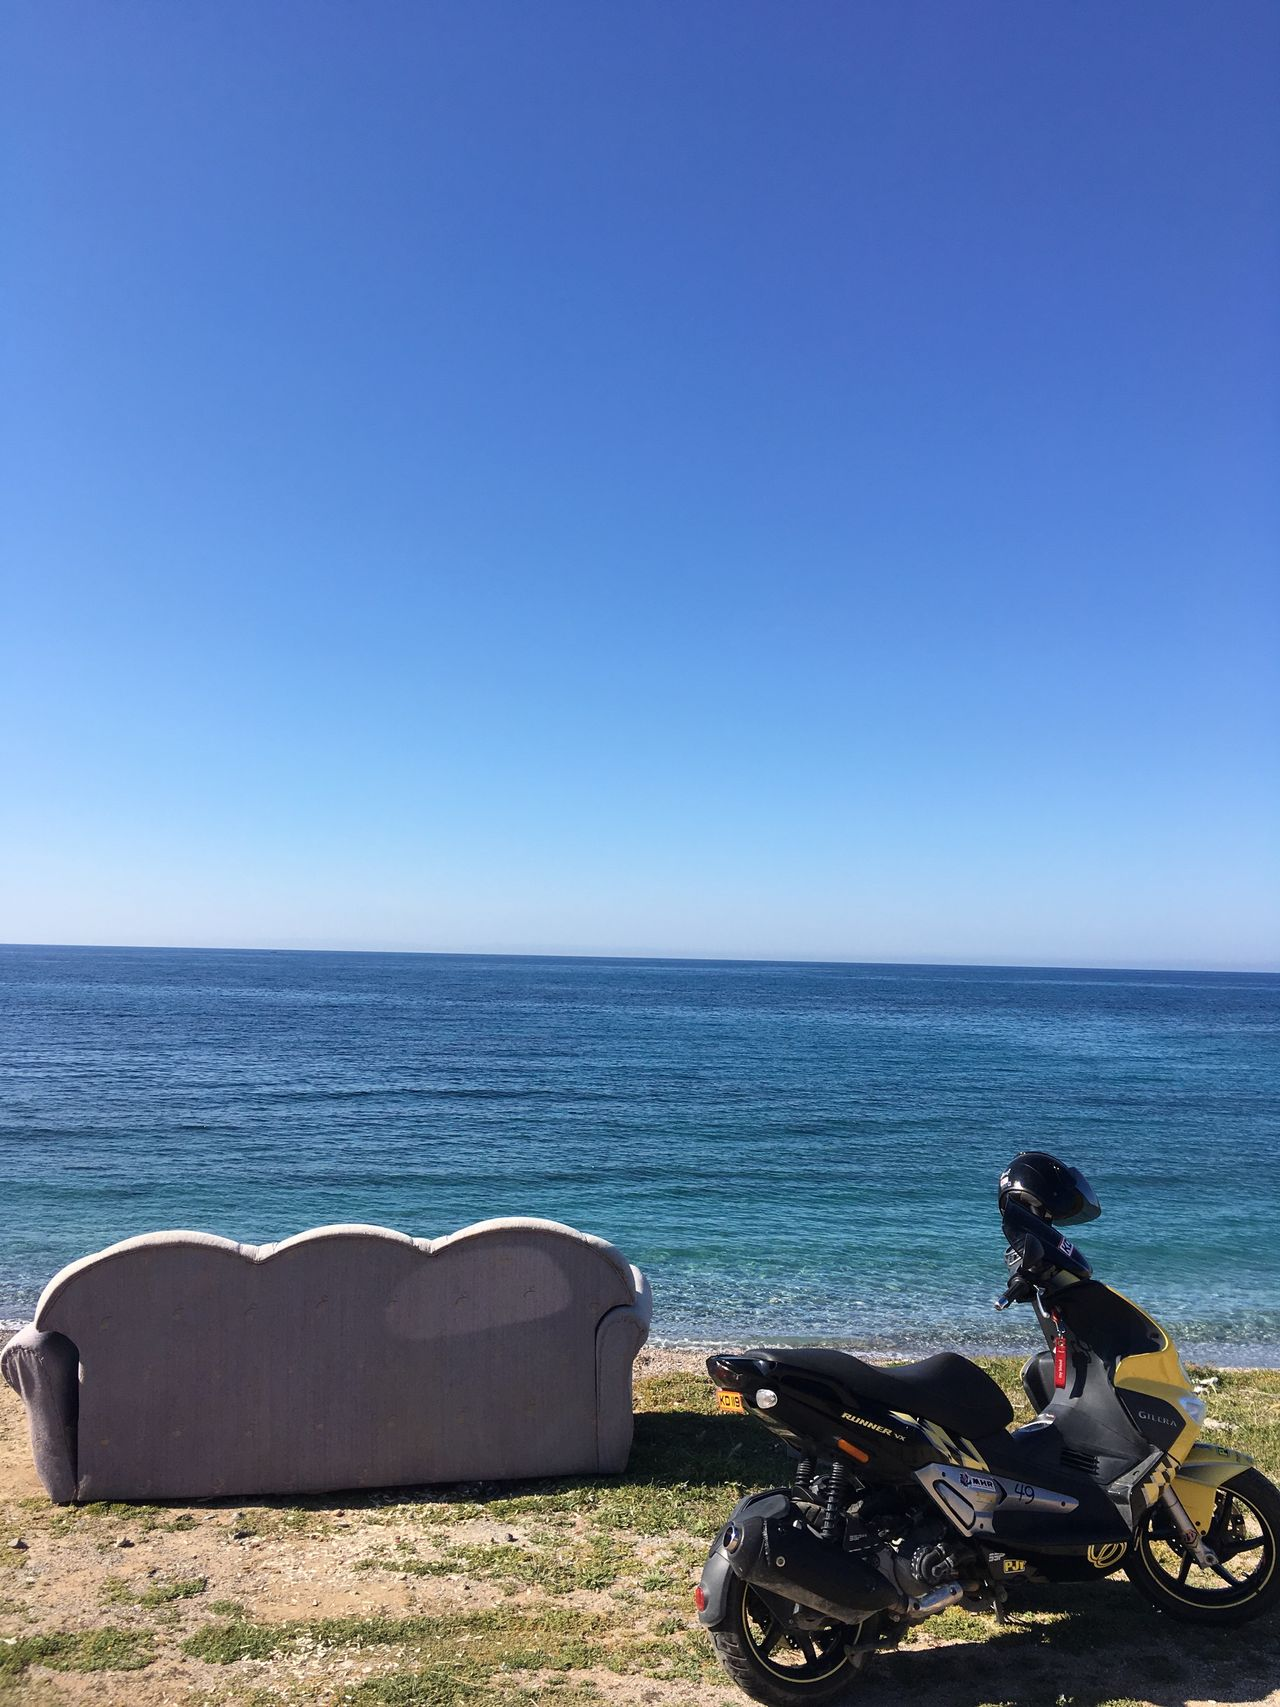 Sea Sitting Horizon Over Water Clear Sky Lifestyles Blue One Person Real People Leisure Activity Water Outdoors Nature Sky Day Scenics Motorcycle Beach Beauty In Nature